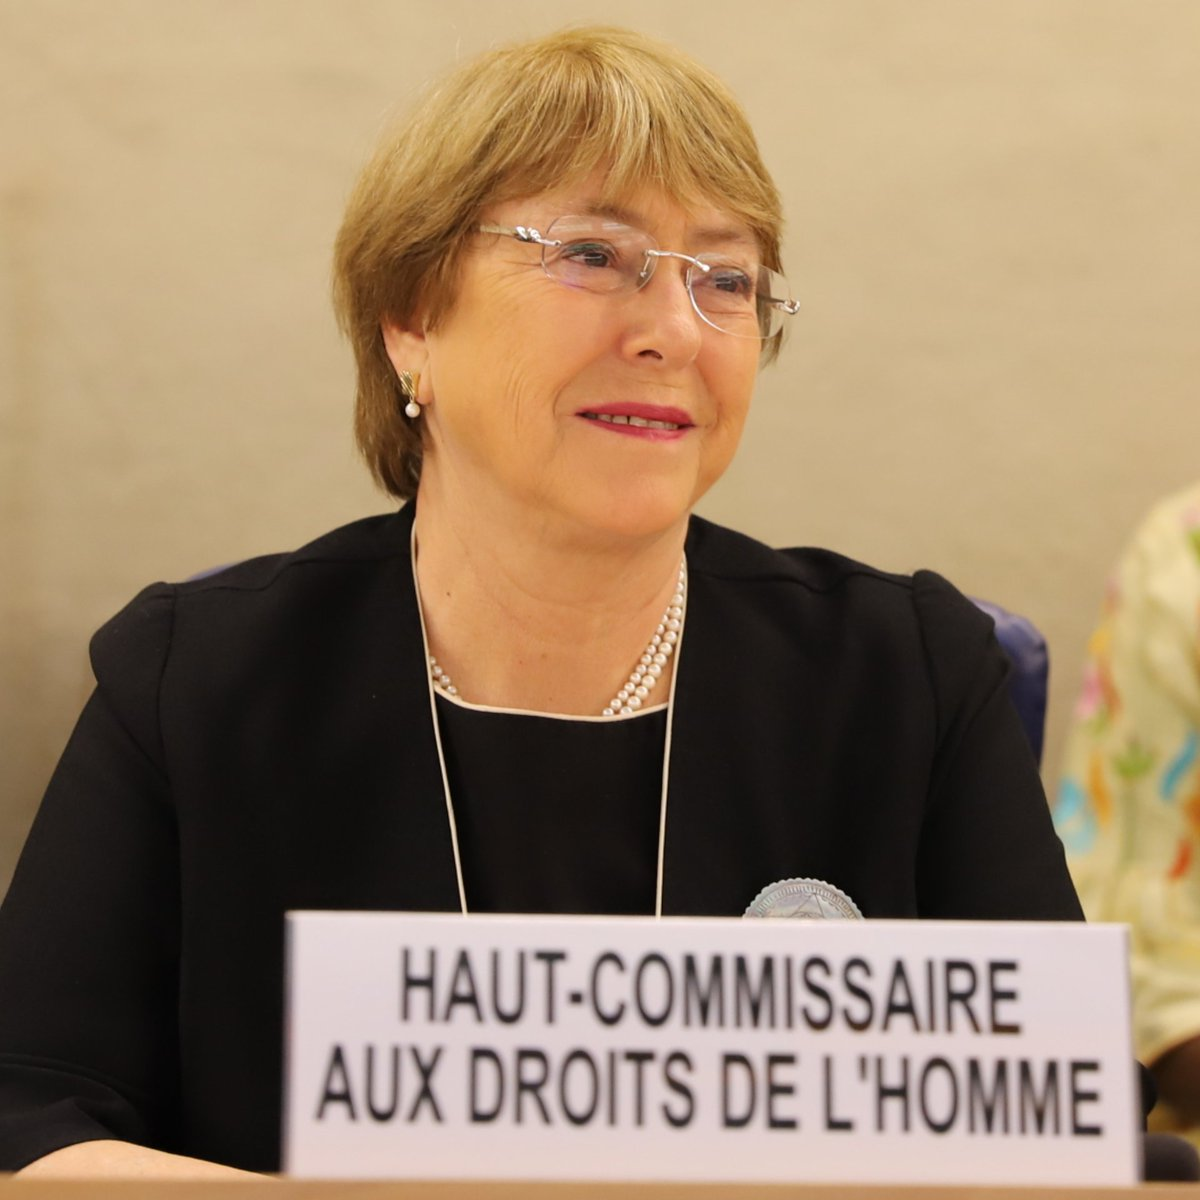 UN human rights chief calls for IS group families to be repatriated